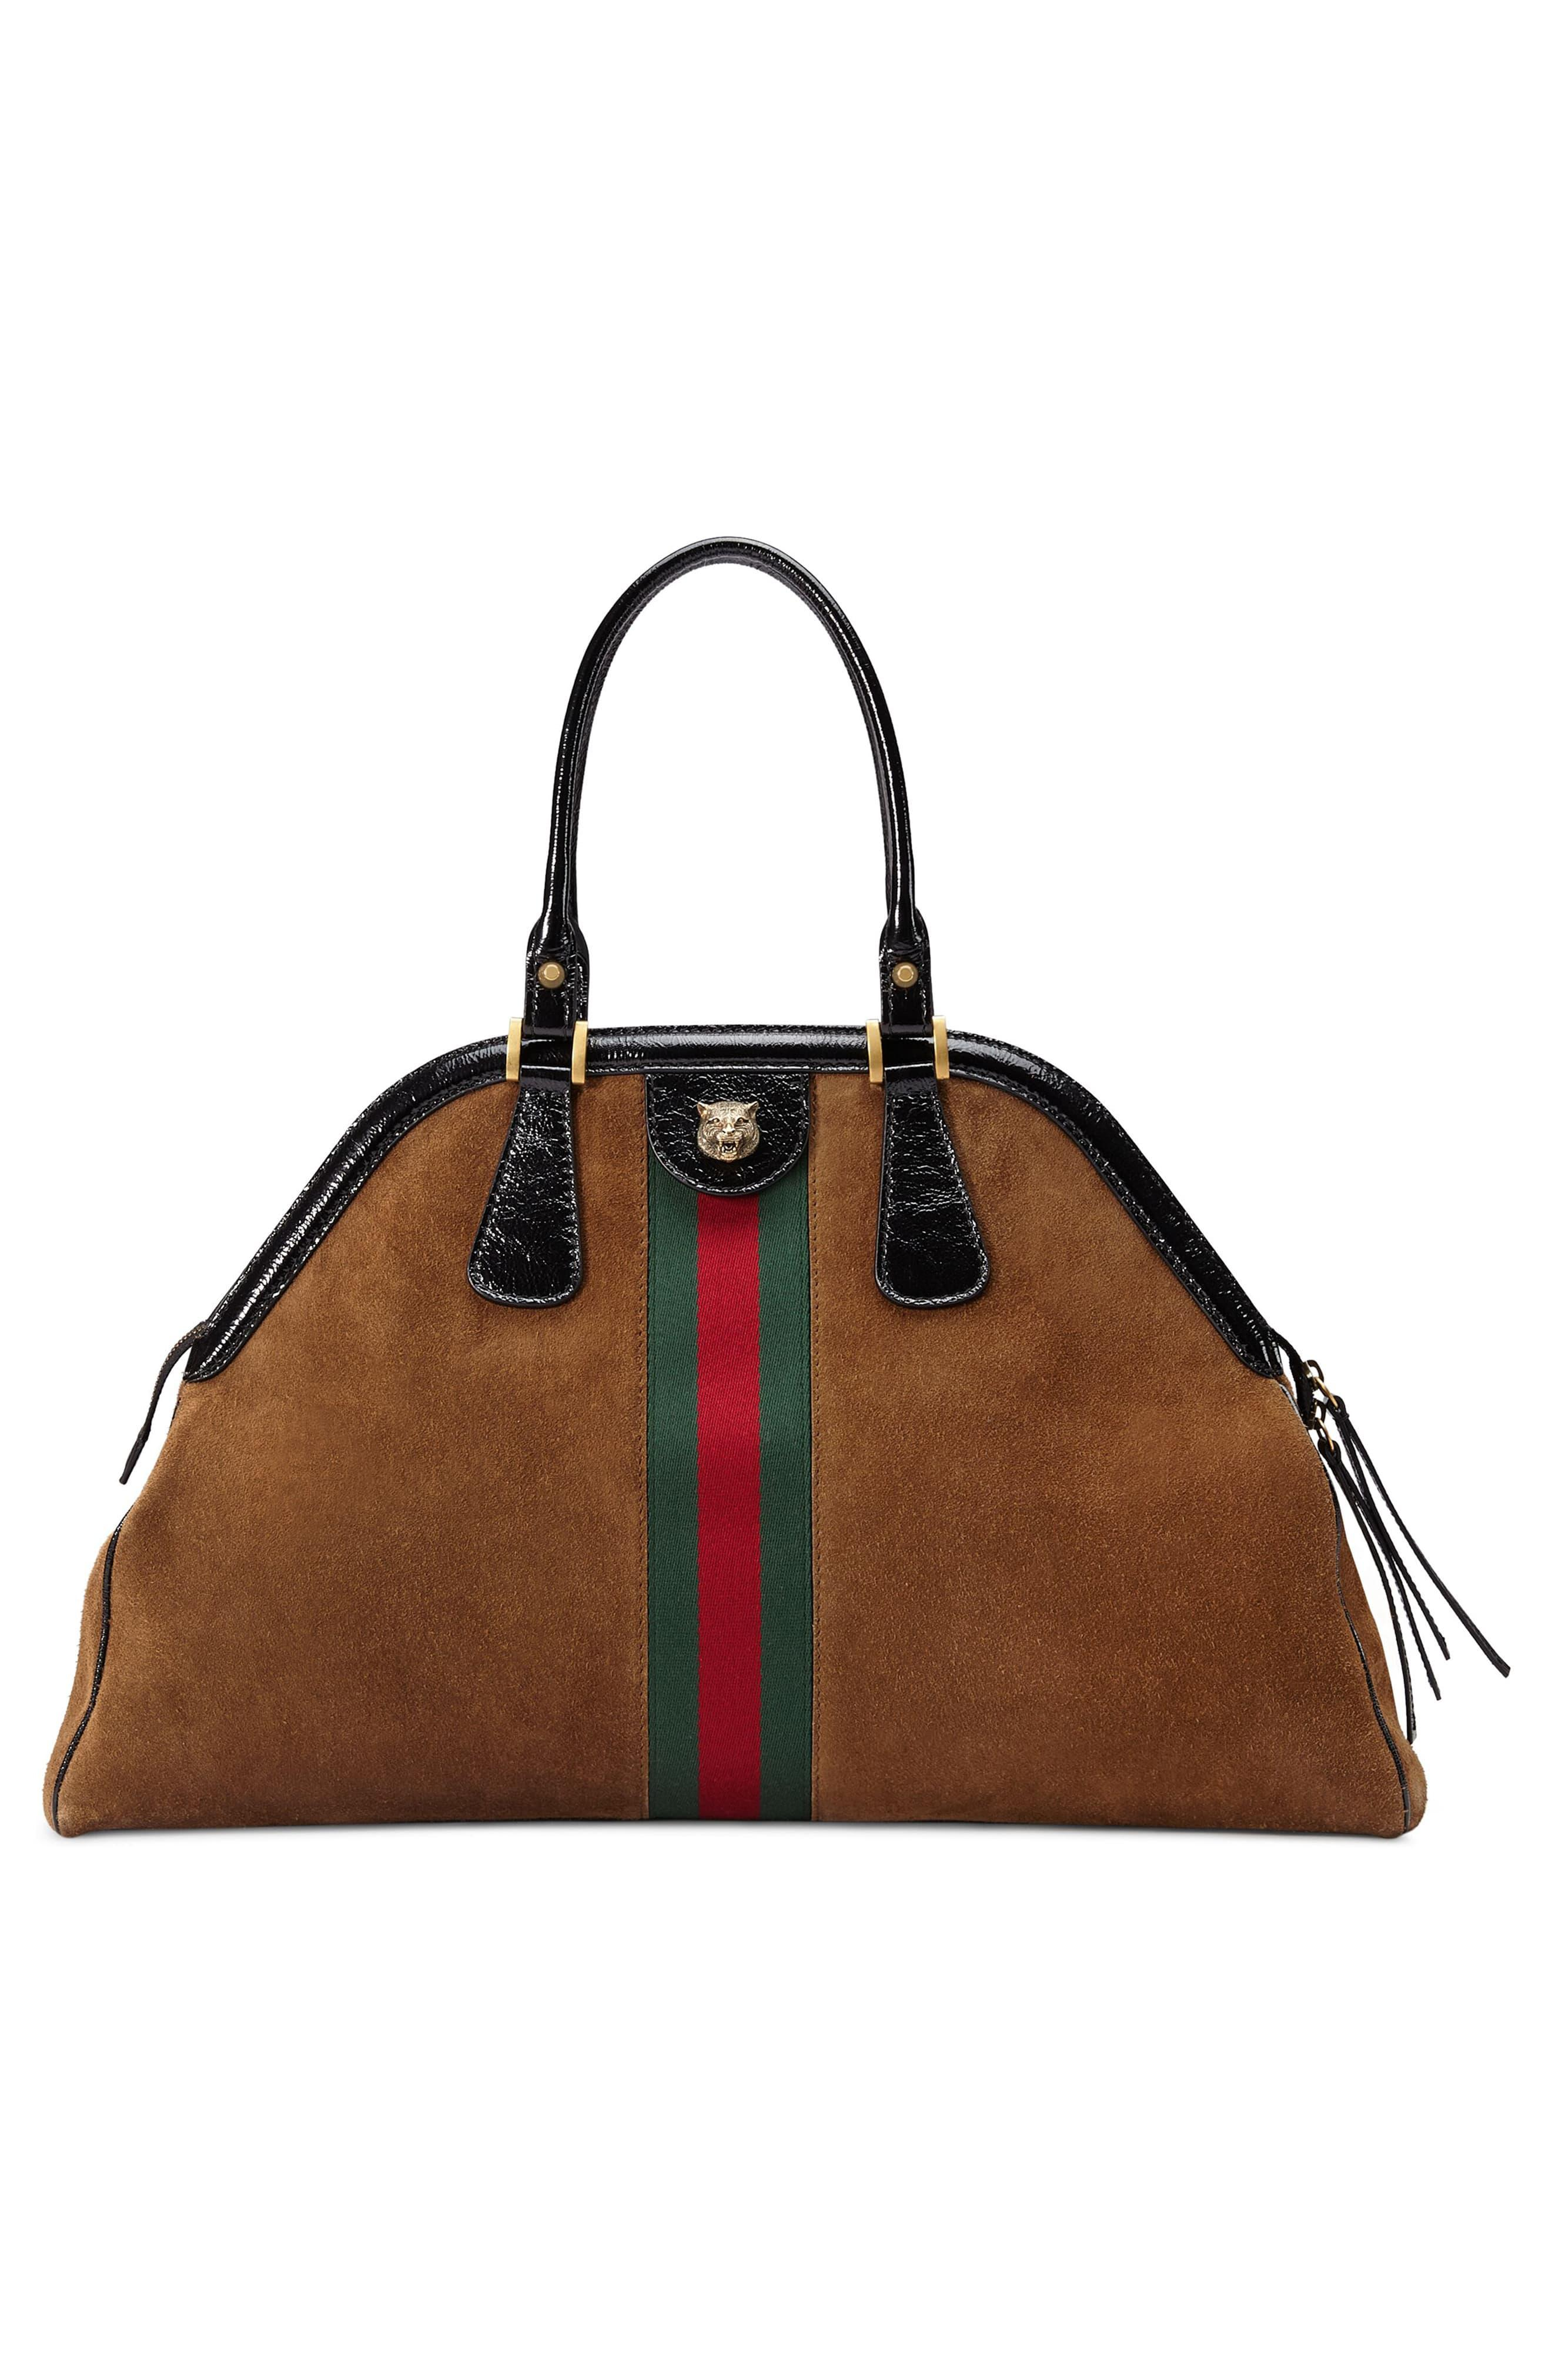 3a2d84401cd0 Gucci Large Re(belle) Suede Satchel - in Blue - Save 16% - Lyst